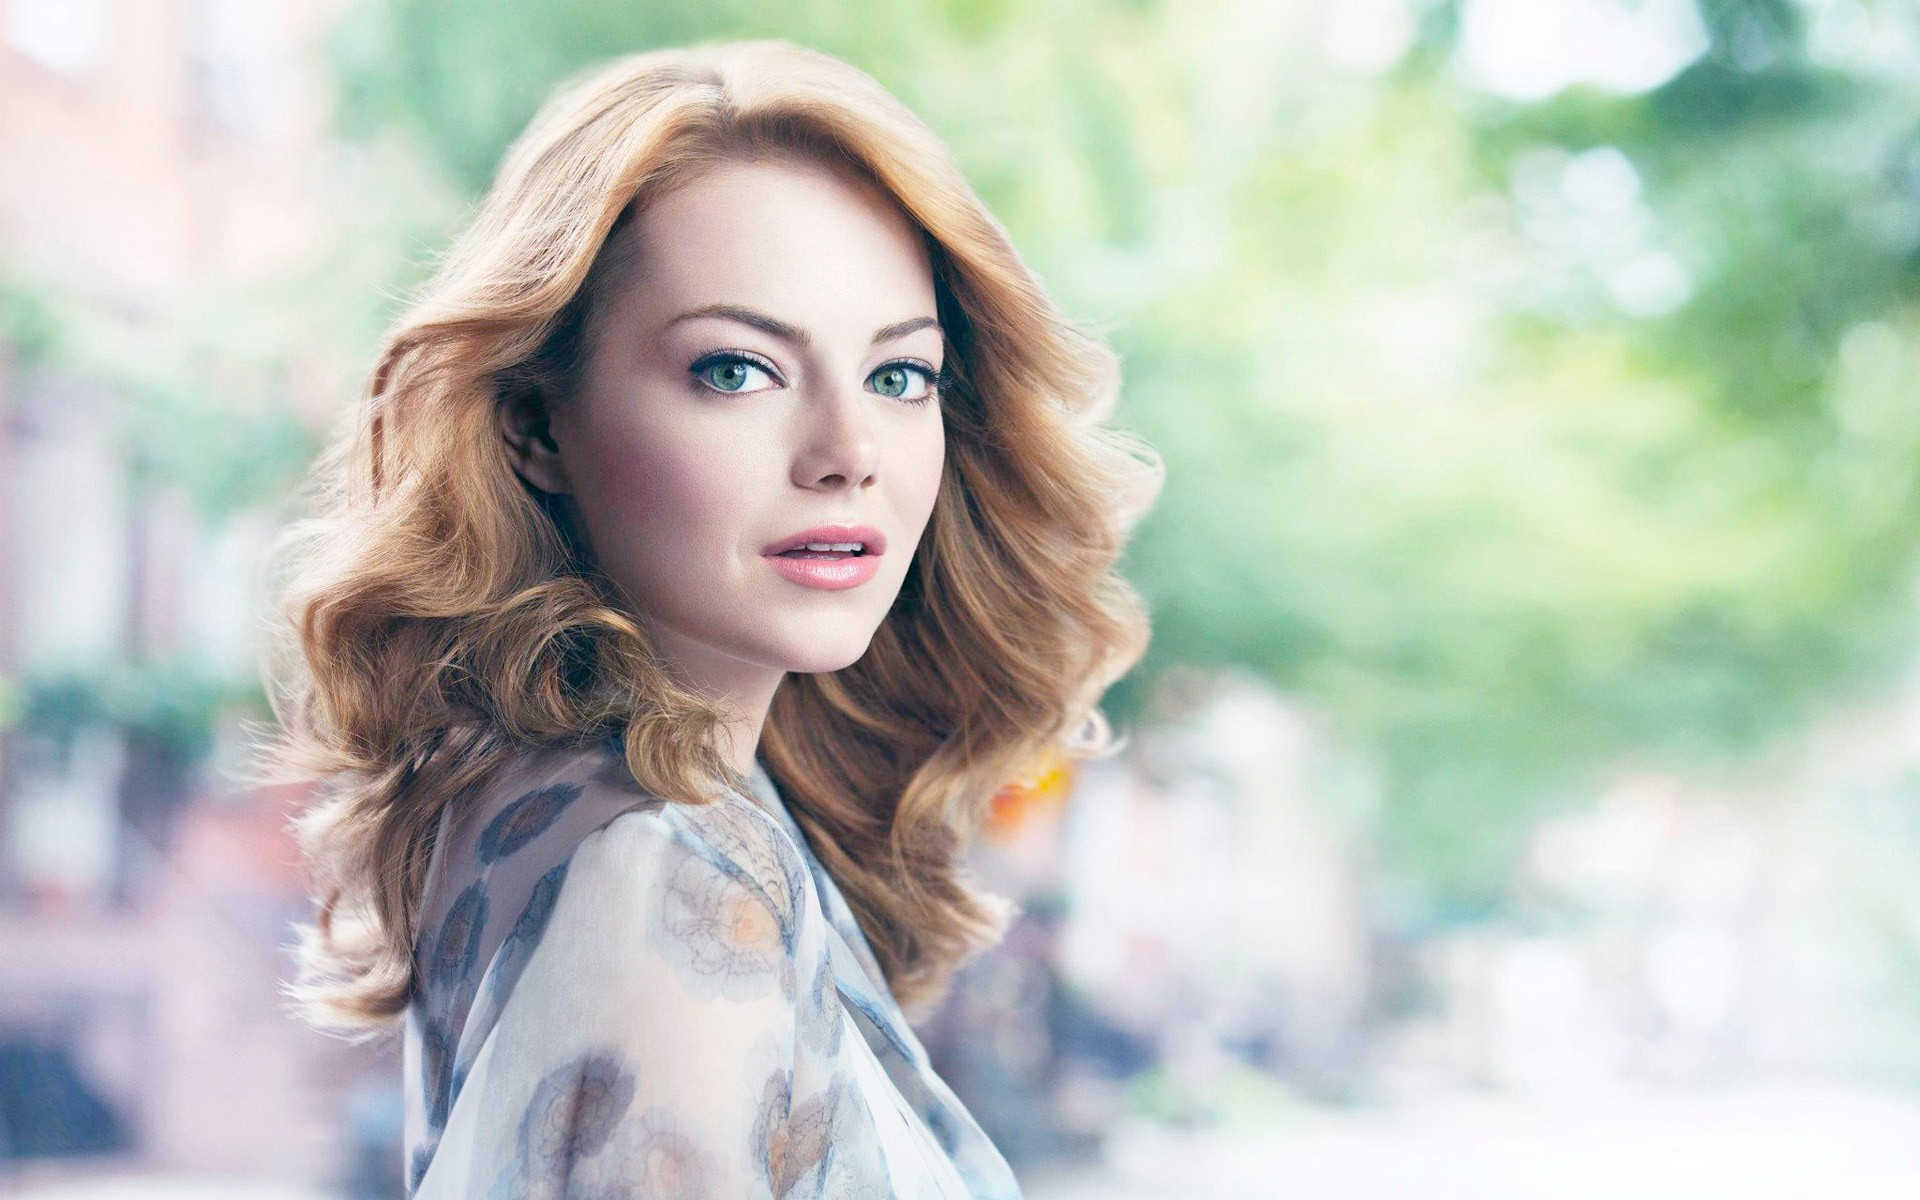 Beautiful Emma Stone 2751.01 Kb